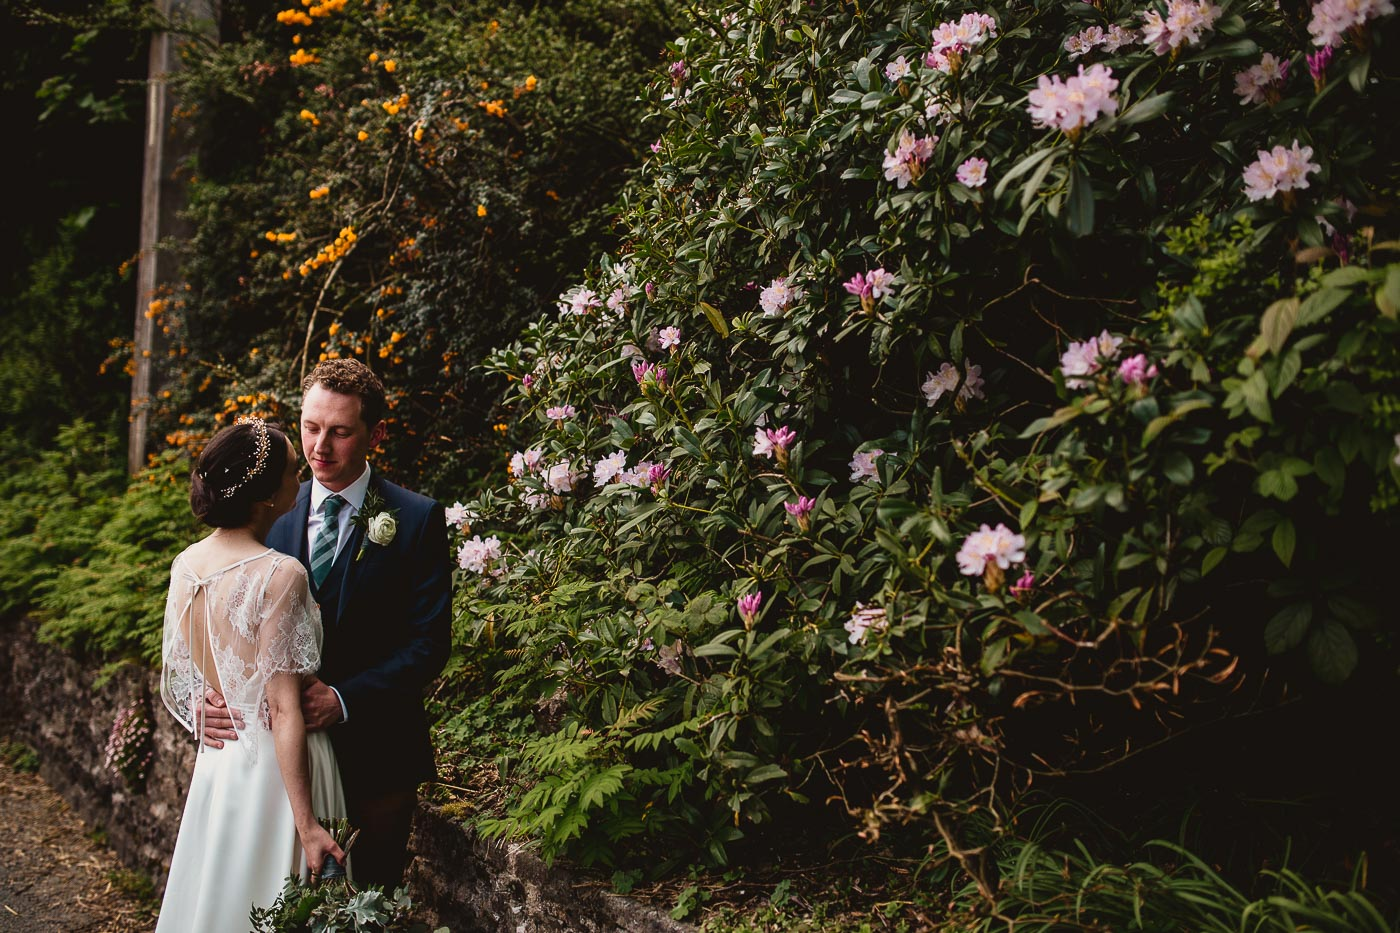 Couple portrait with greenery in background, The Inn at Whitewell wedding photography